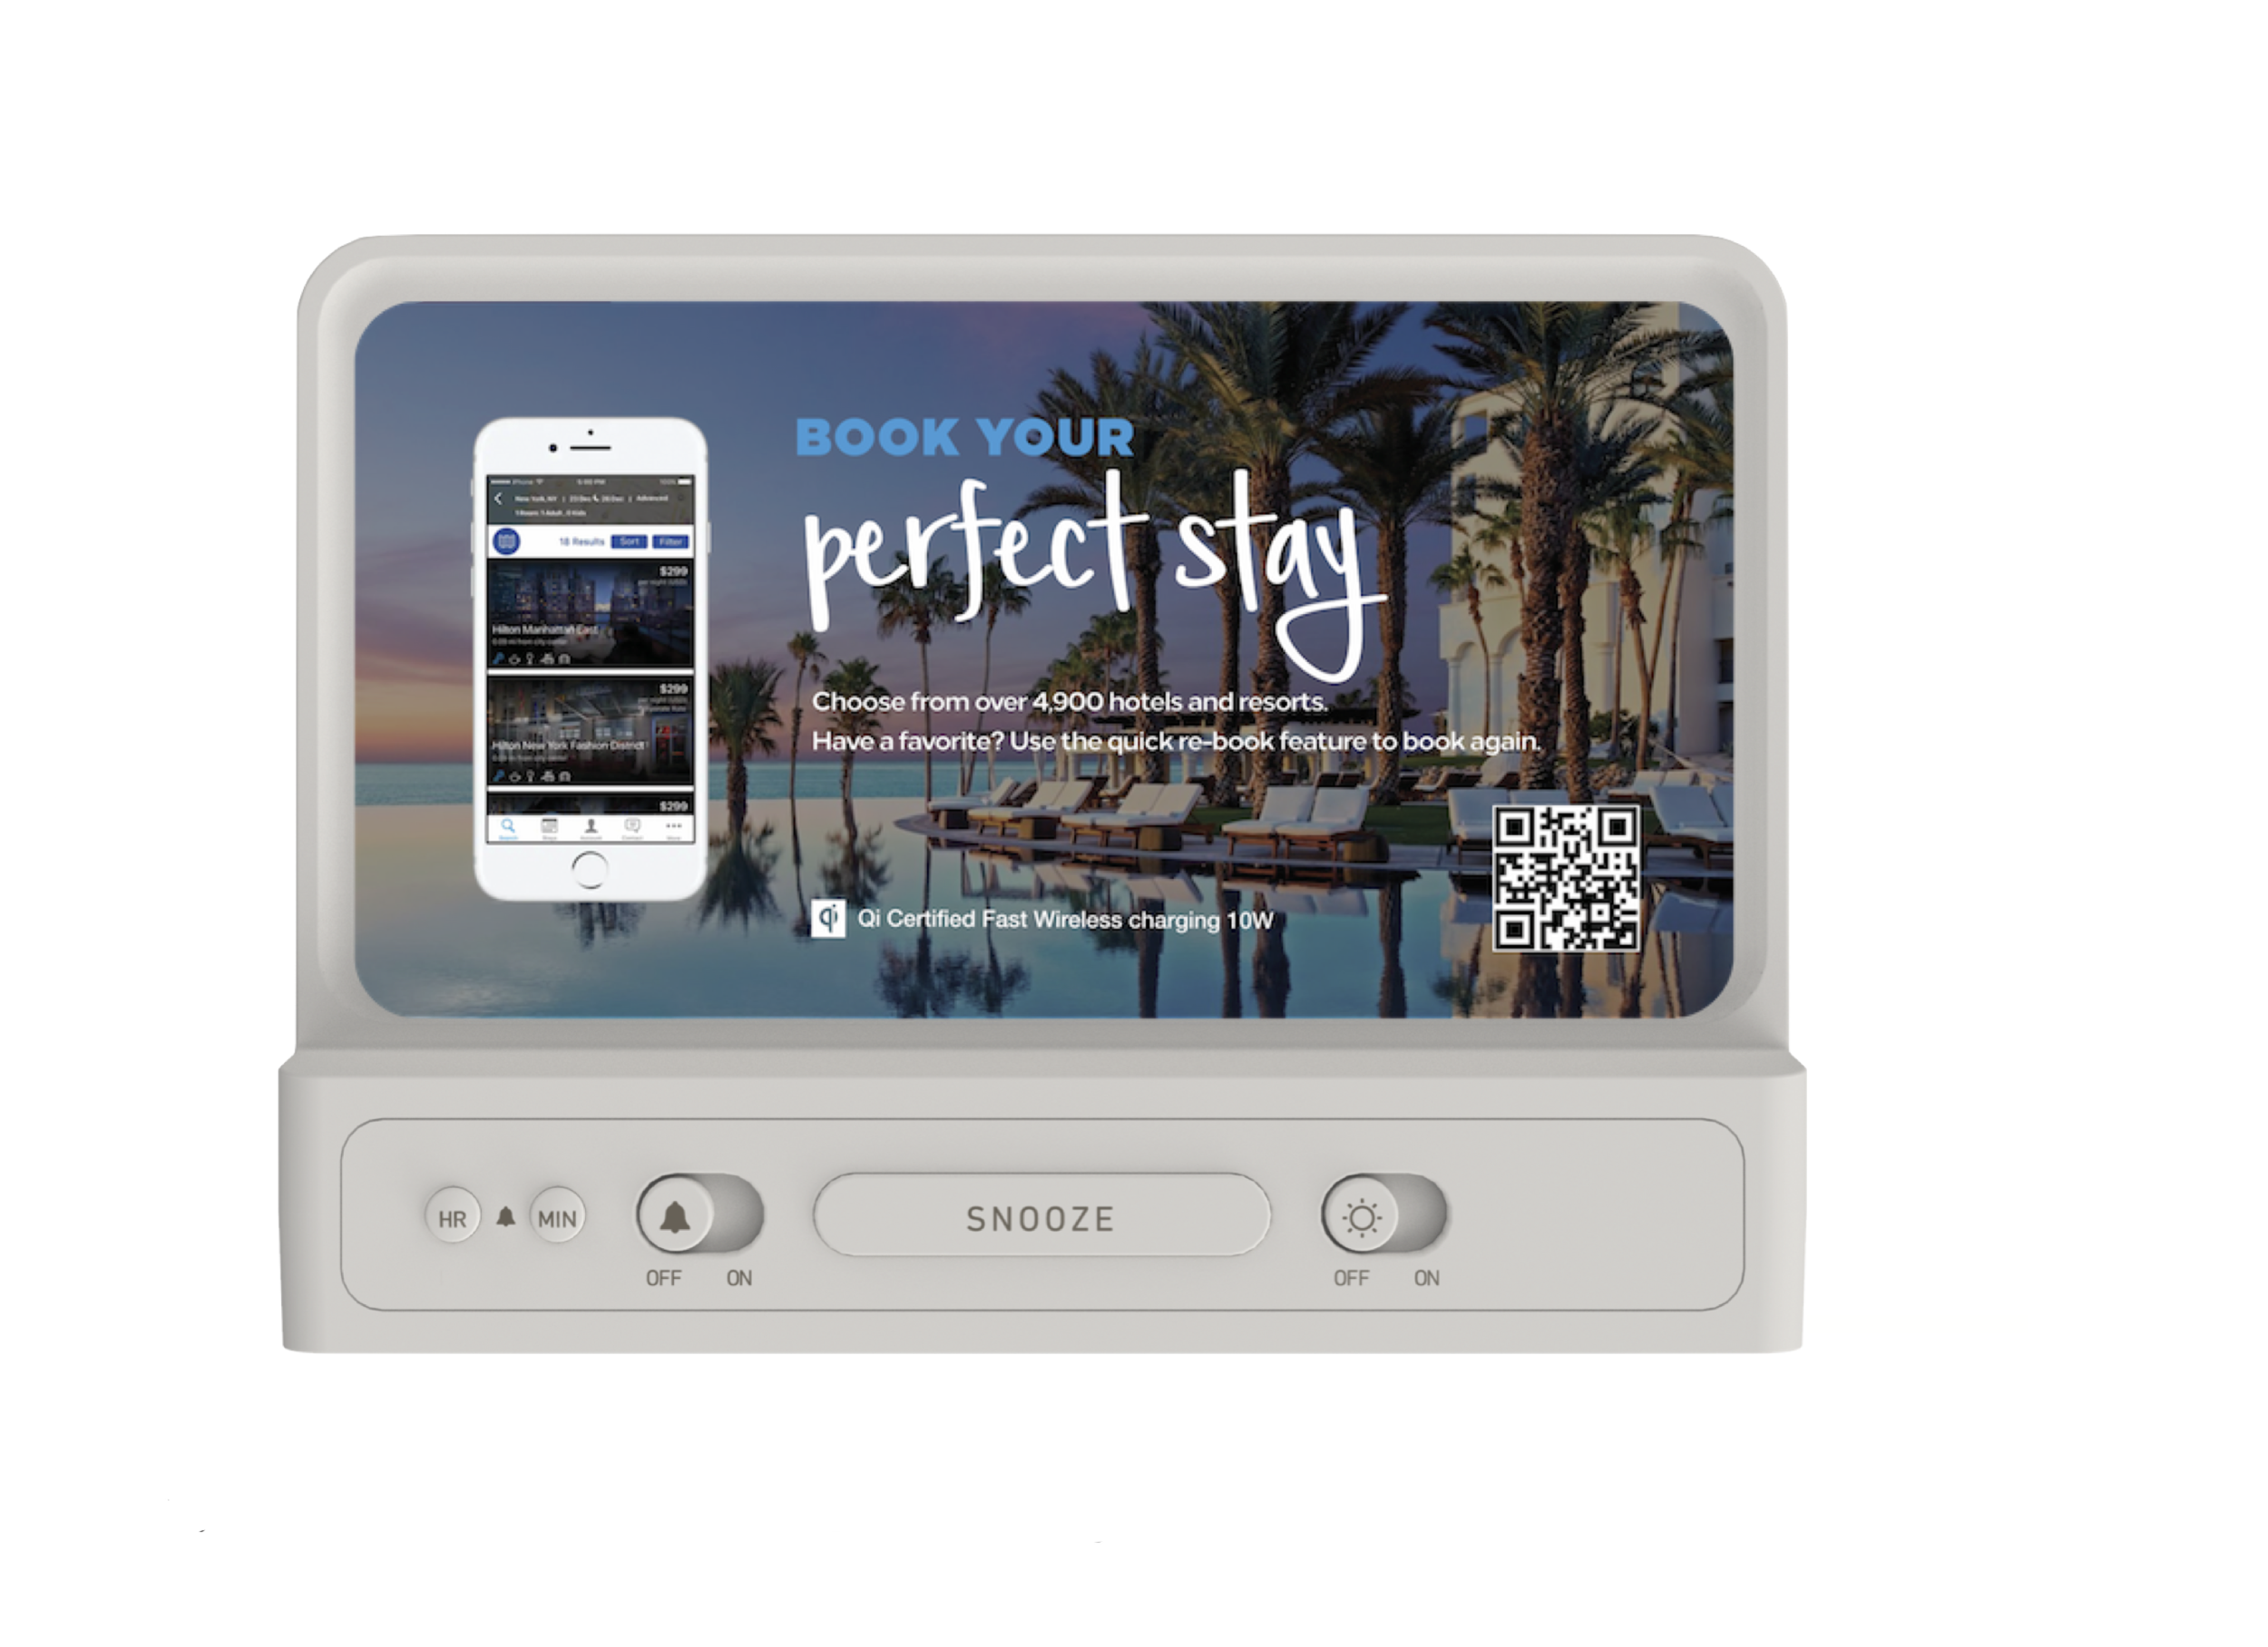 Nonstop Station - Marriott App  - Station W Product Page .png